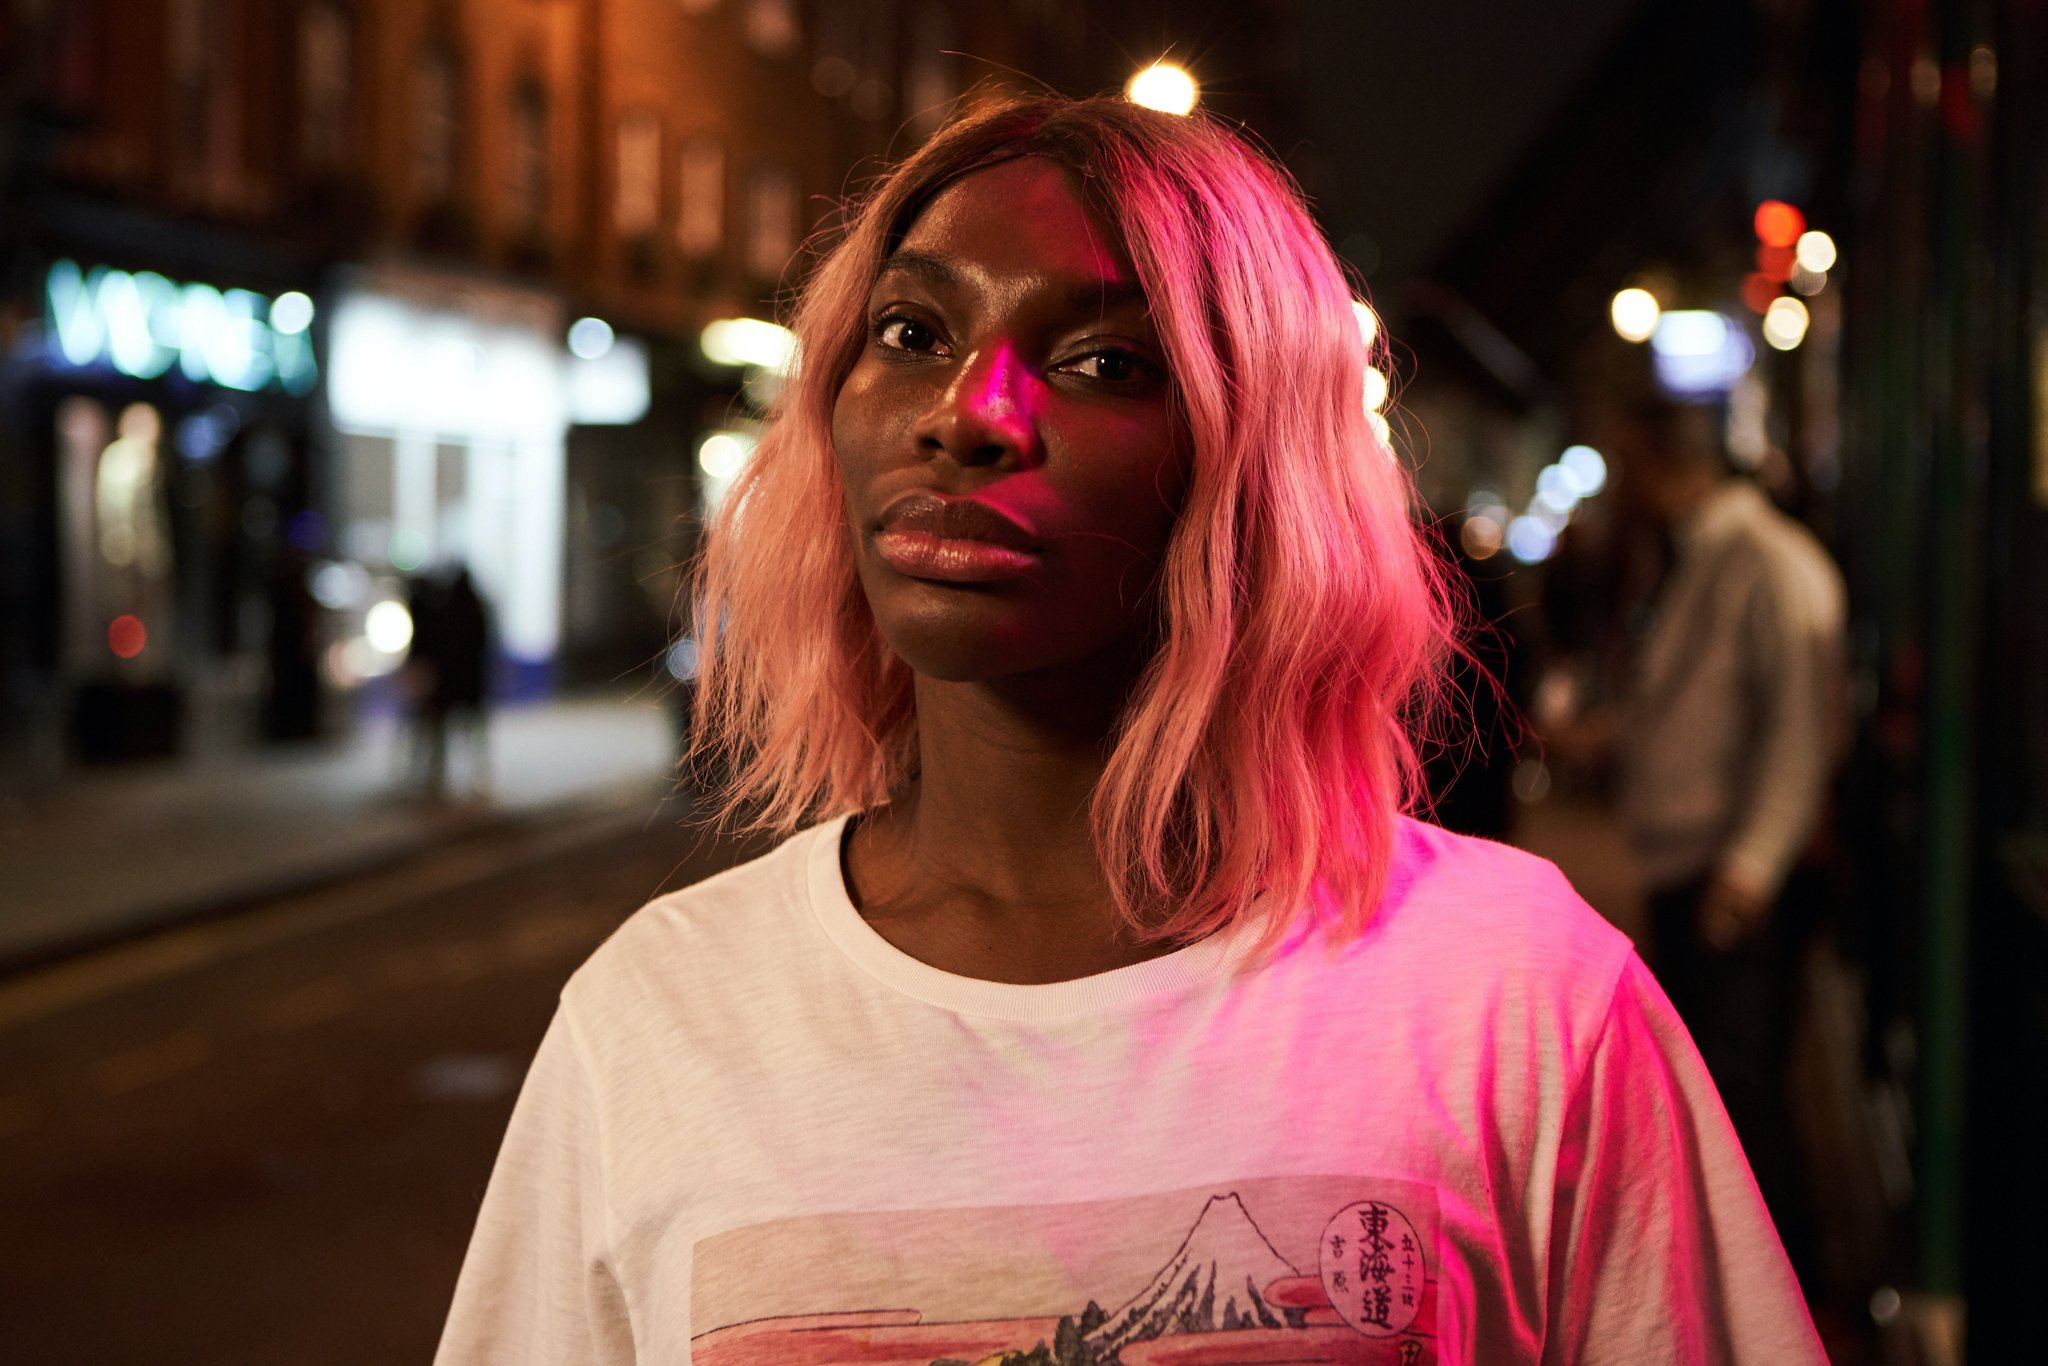 Michaela Coel Stars In New HBO Show 'I May Destroy You'